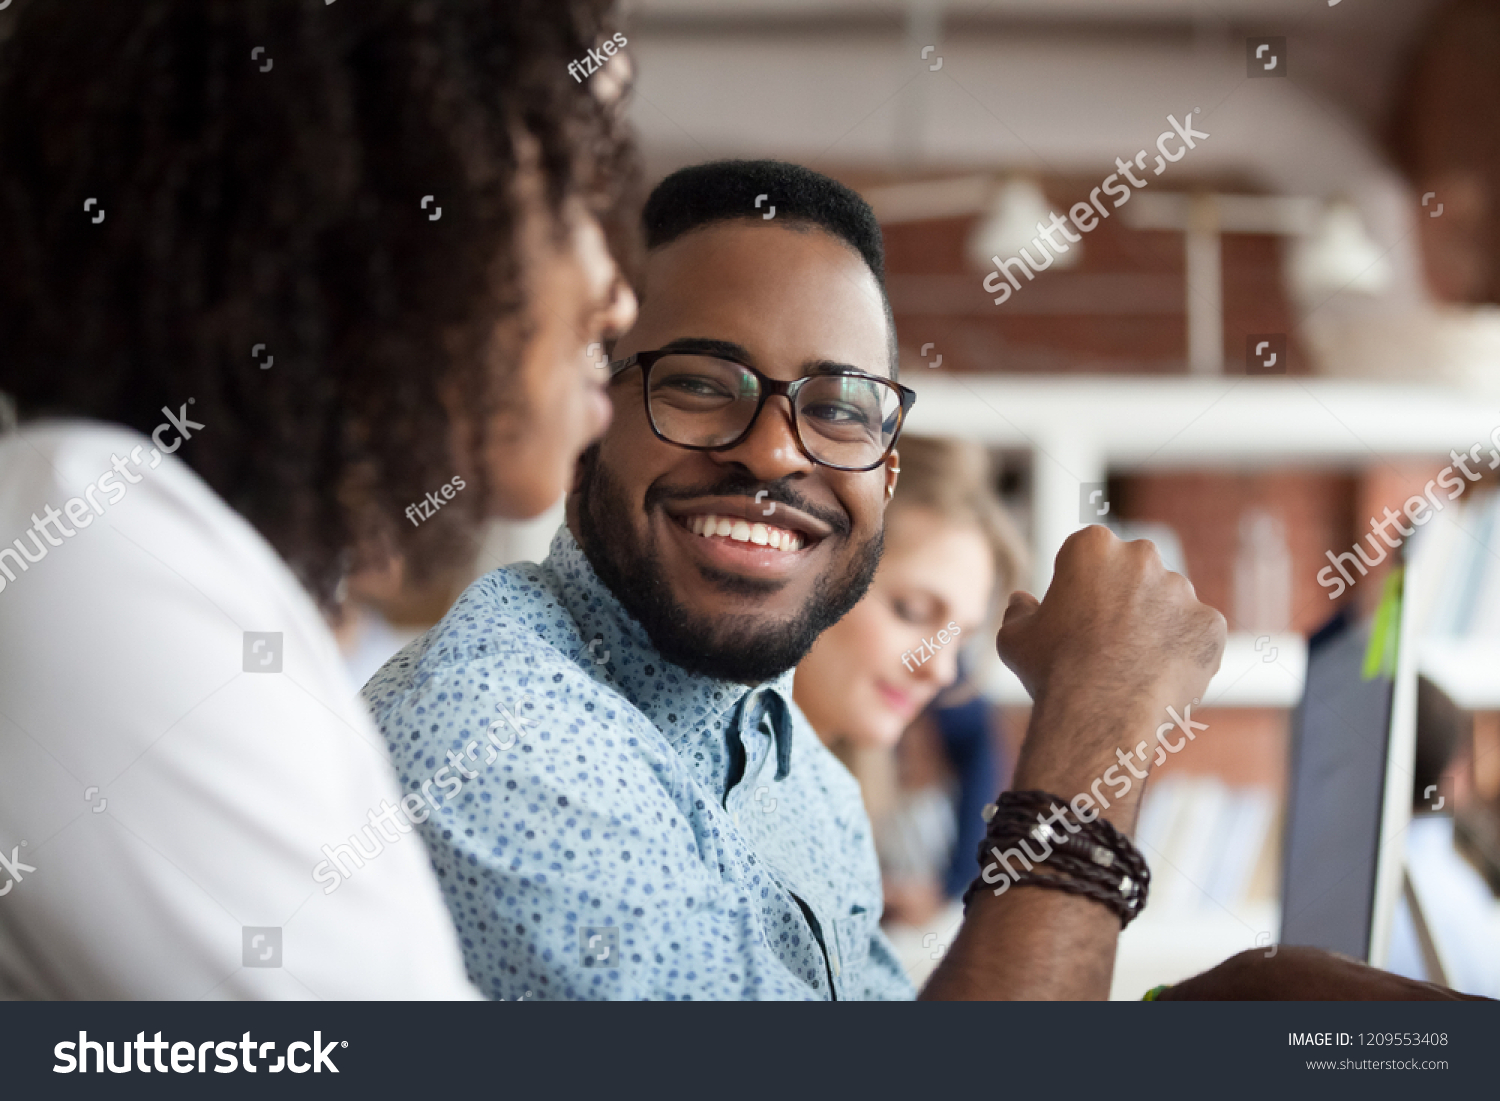 Close up of smiling African American employee look at female colleague chatting in office, happy black male worker talk with woman coworker, having casual conversation at workplace, have fun #1209553408